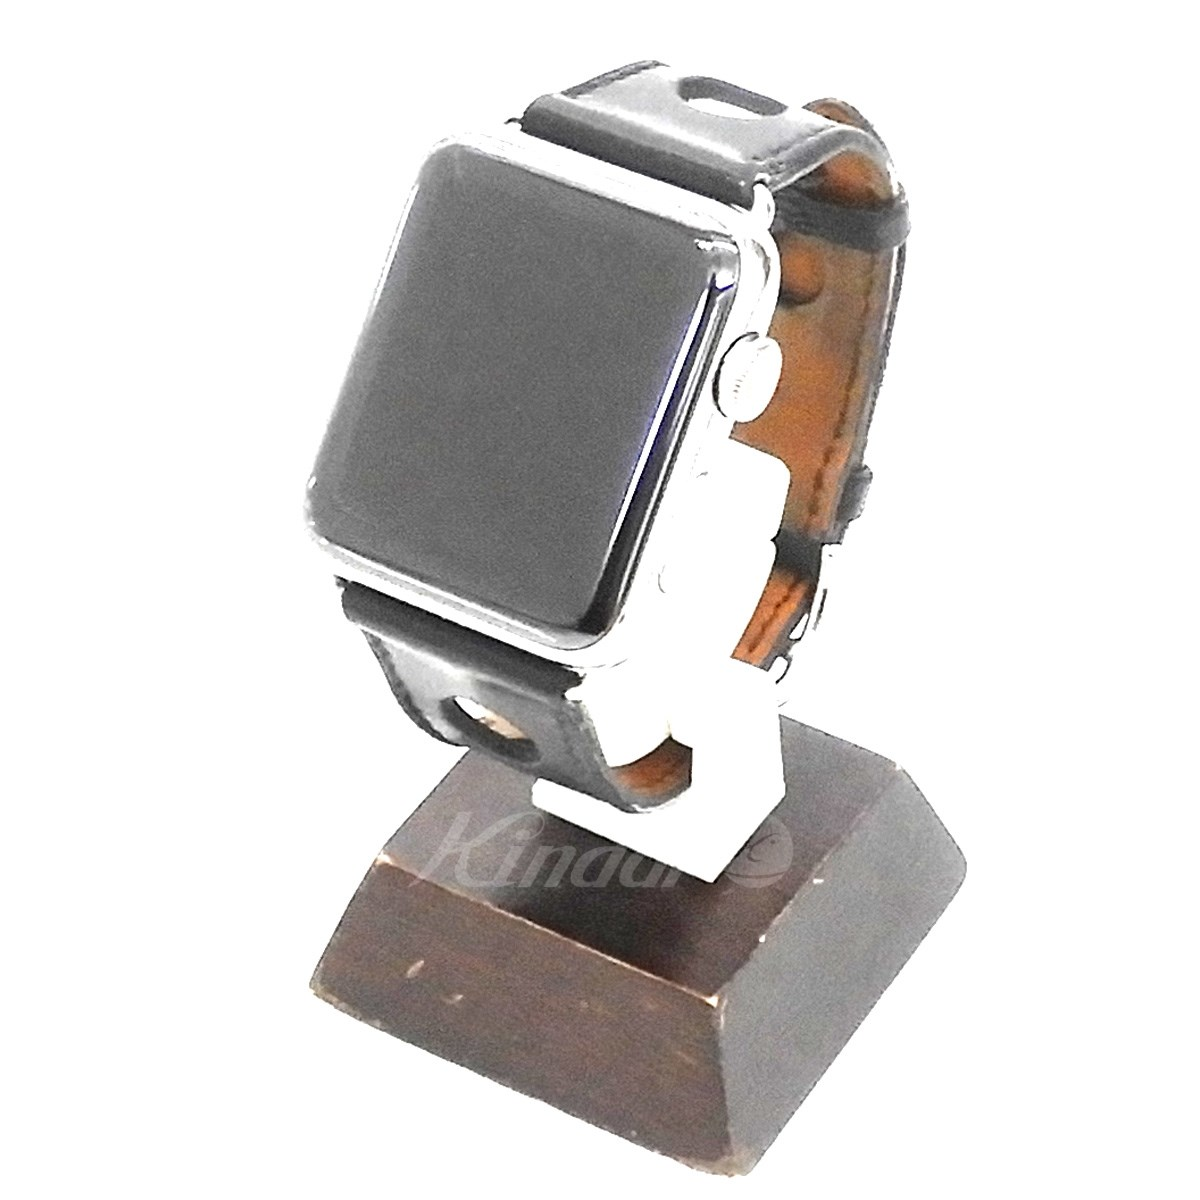 【中古】HERMES 「Watch Series3 GPS cellular 42mm MQX72J」腕時計 【送料無料】 【144307】 【KIND1550】